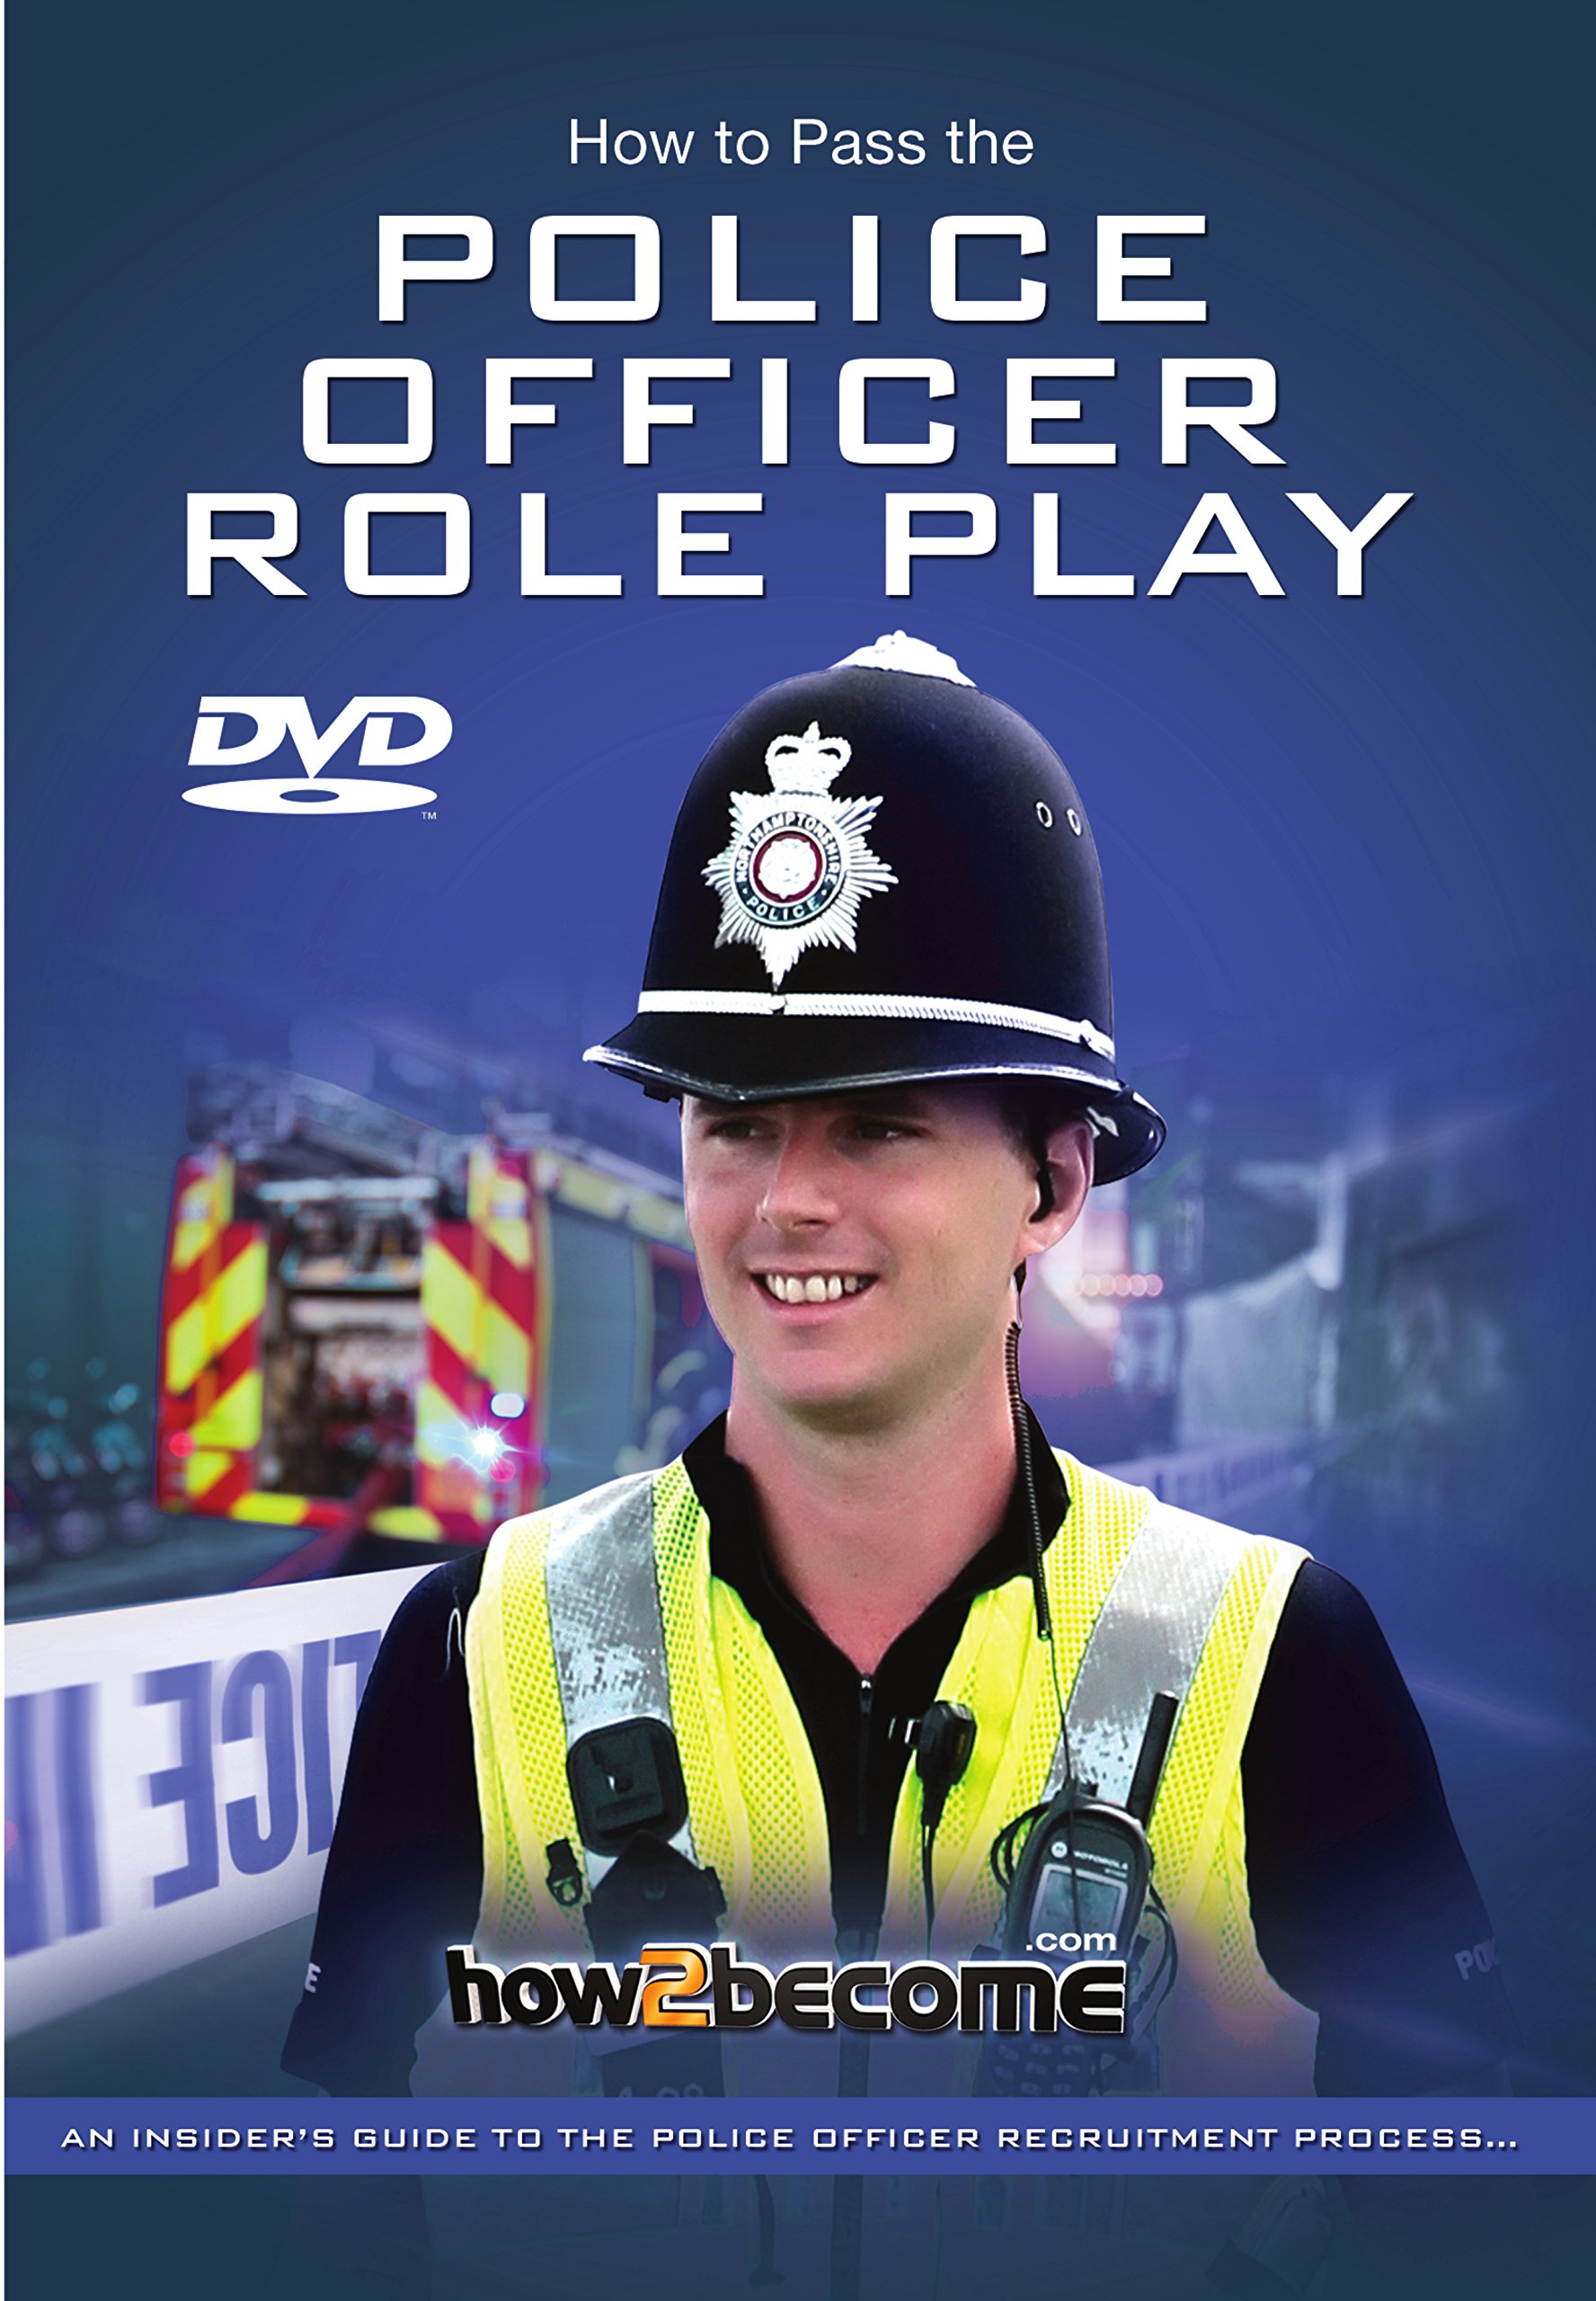 police officer interview questions and answers new core the police officer role play dvd pass the police officer pcso police recruitment role